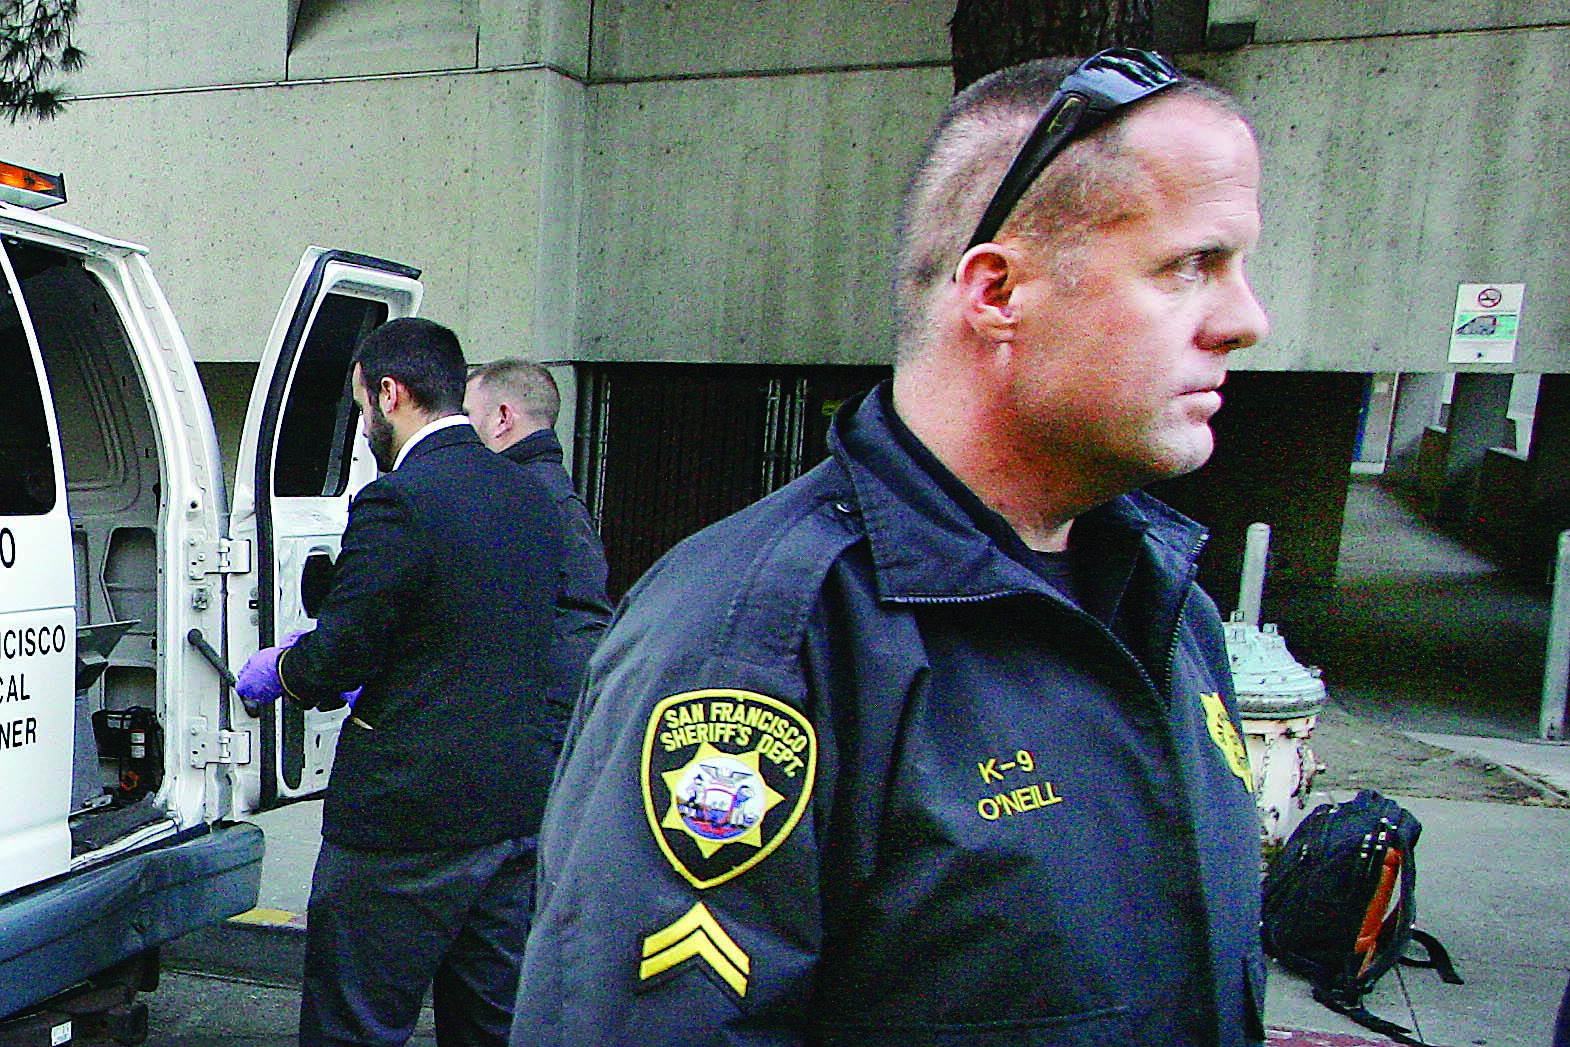 The Controller's survey noted The City's population increased by 12 percent from 2004 to 2014, the police staffing declined by 3 percent. Over that period, the rate of sworn officers per 100,000 residents declined 13 percent, making San Francisco's staffing levels lower than the other cities. MIKE KOOZMIN/S.F. EXAMINER